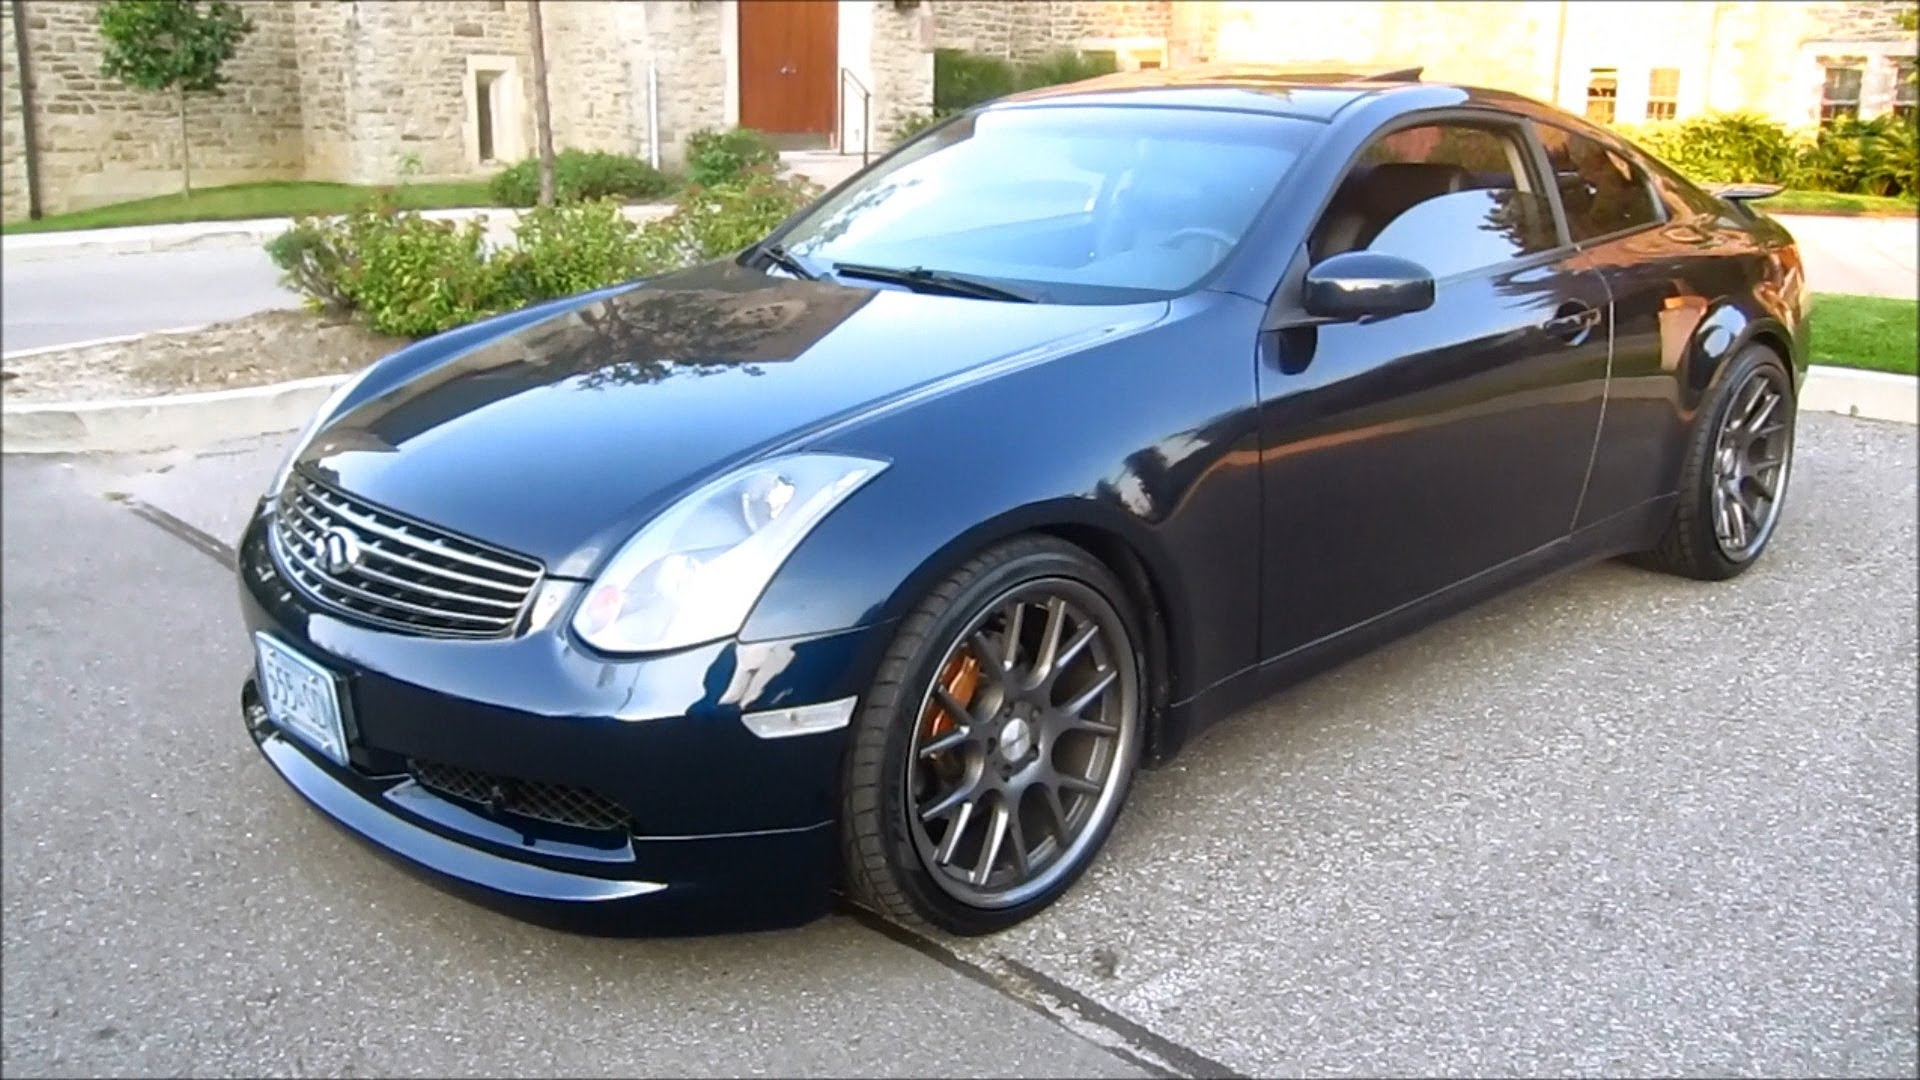 Infiniti g35 photo gallery Photo Gallery CLASSIC CARS TODAY ONLINE